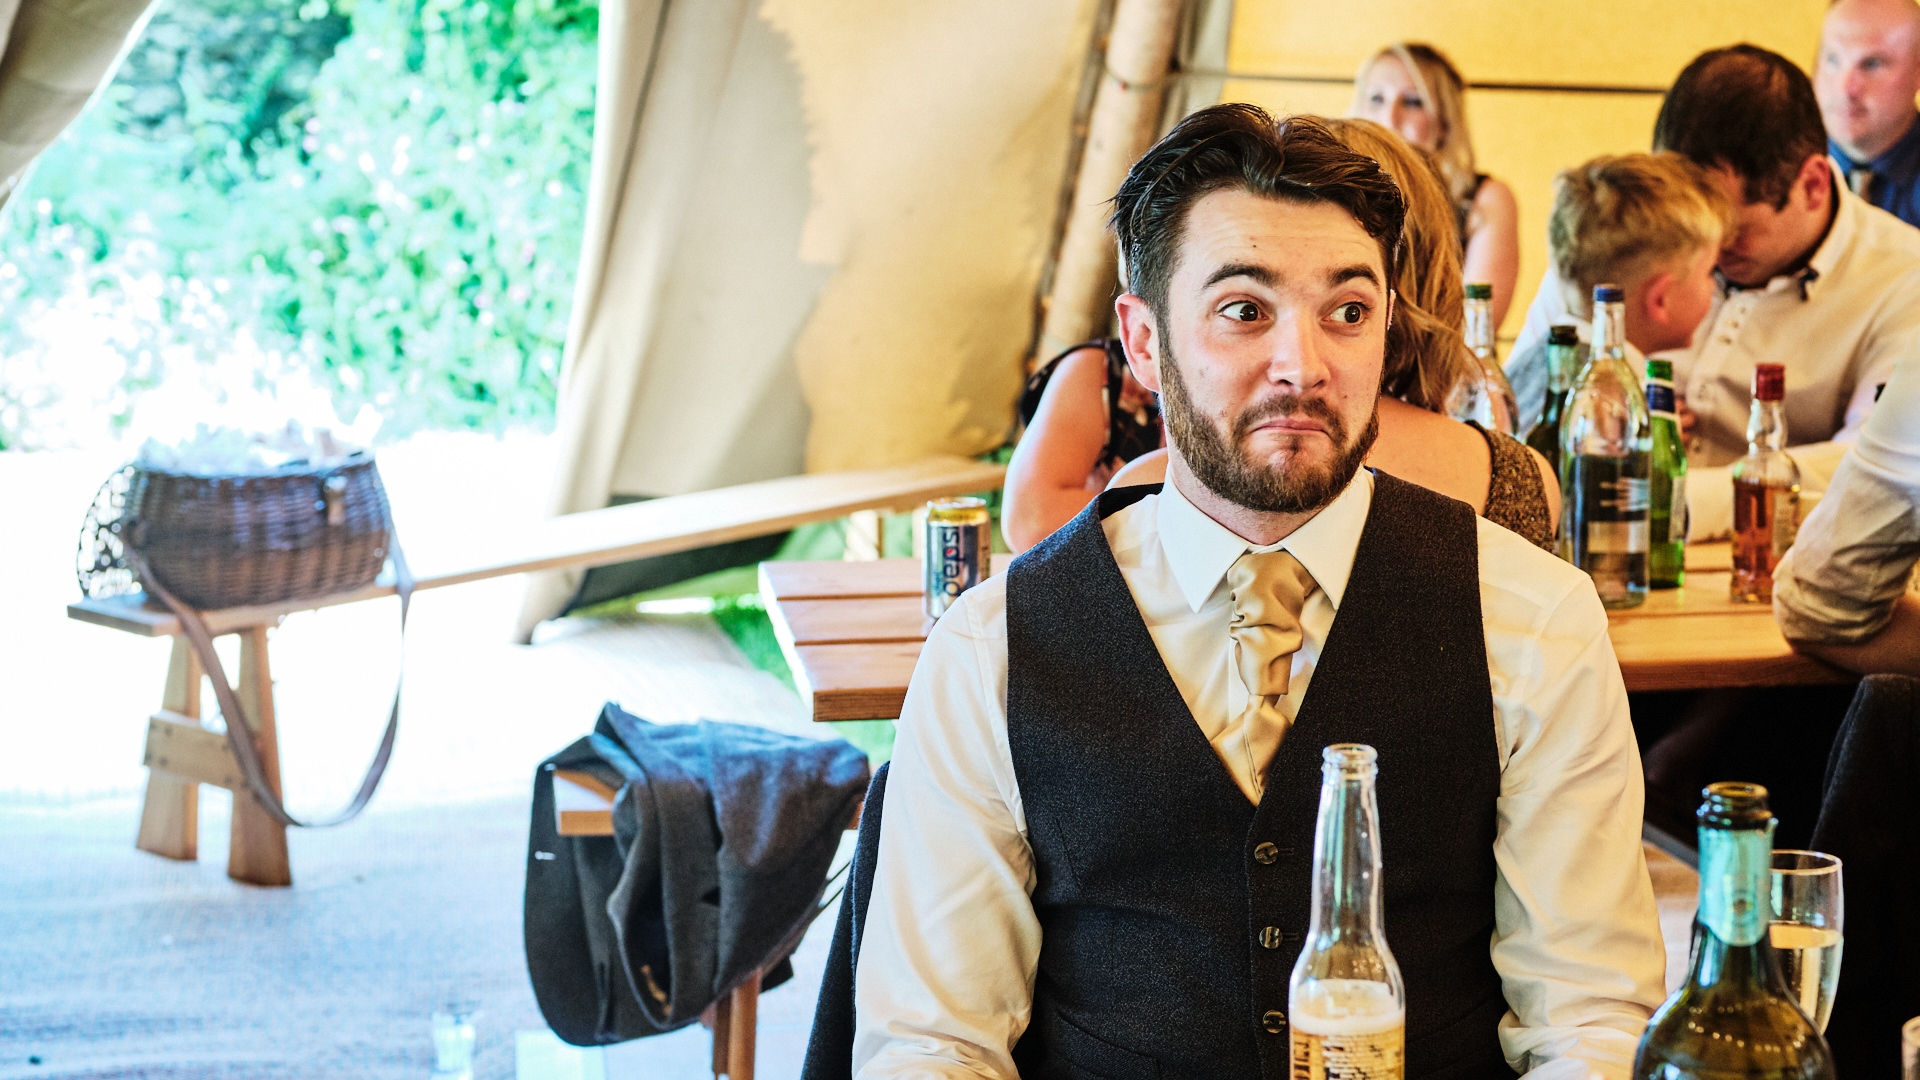 colour photograph of a wedding guest smiling during the speeches at a wedding